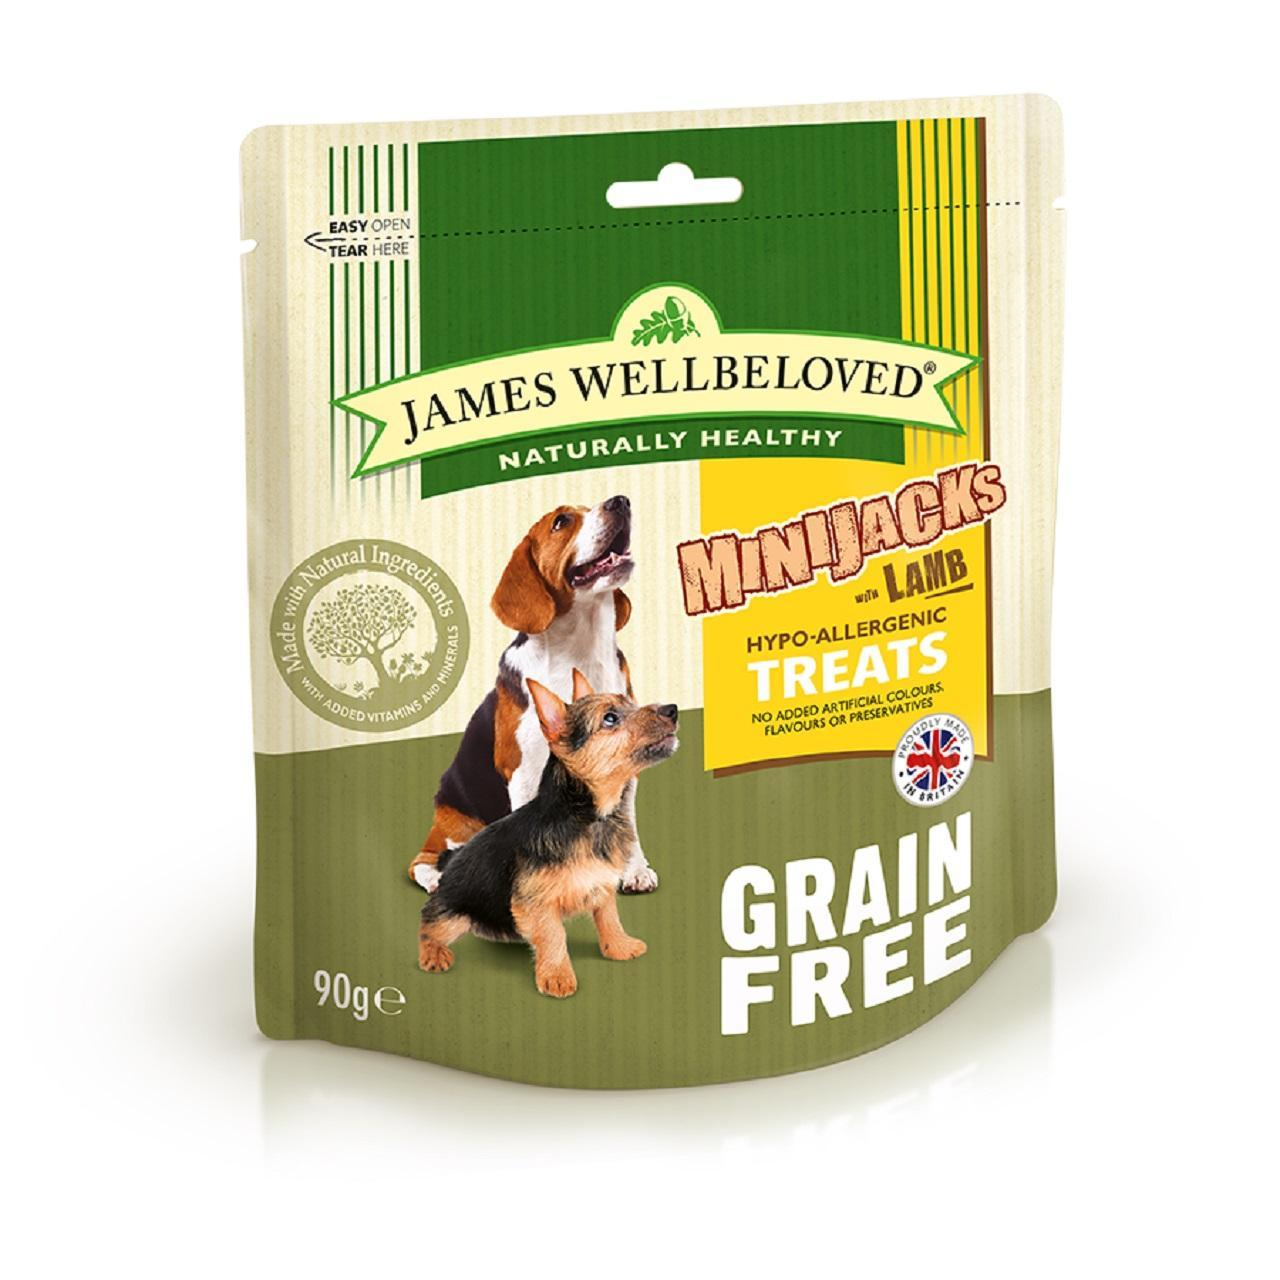 An image of James Wellbeloved Grain Free Lamb Minijacks